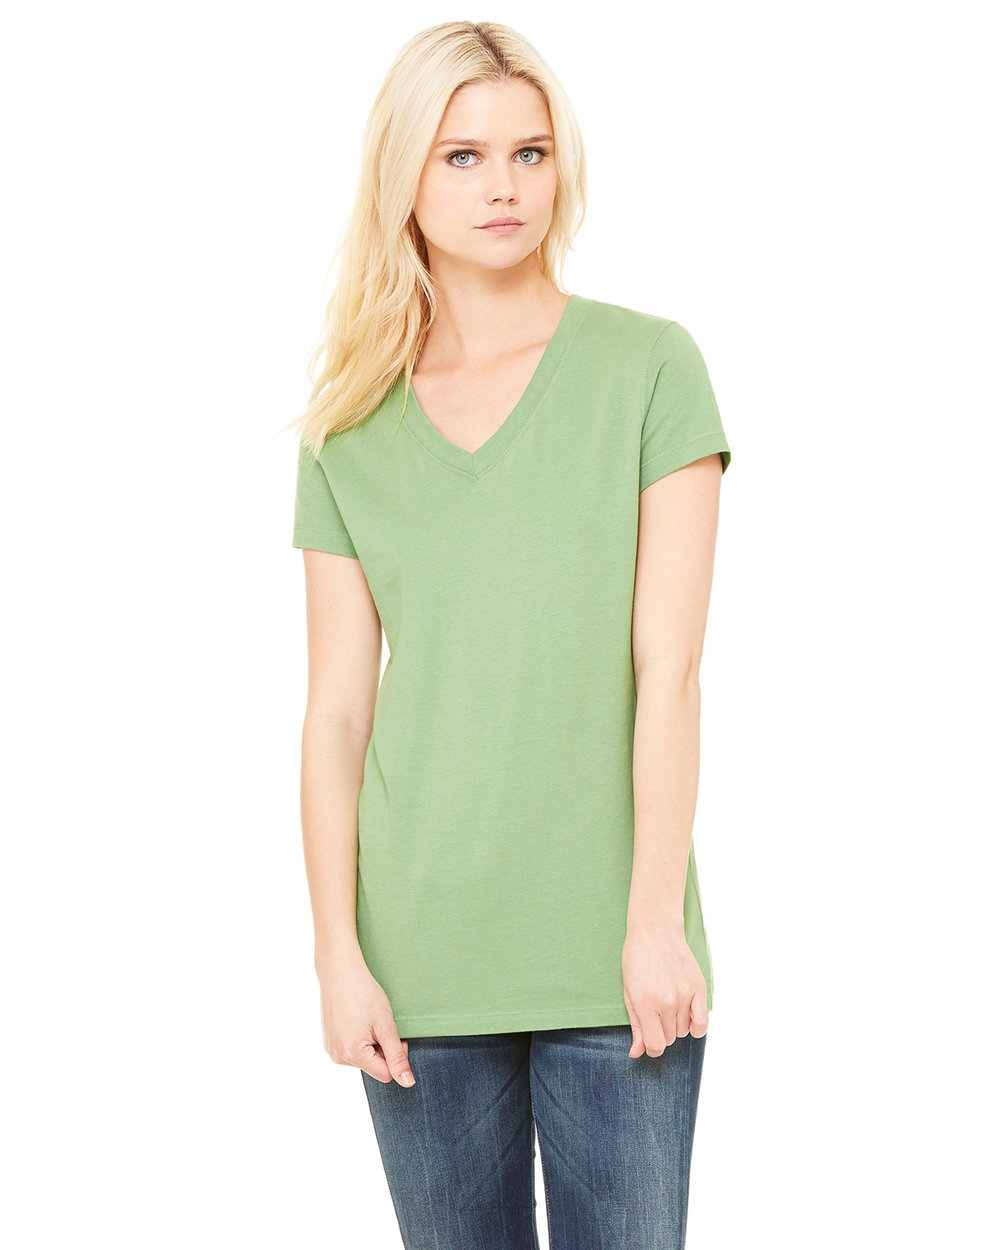 Bella+Canvas Jersey V-Neck #B6005